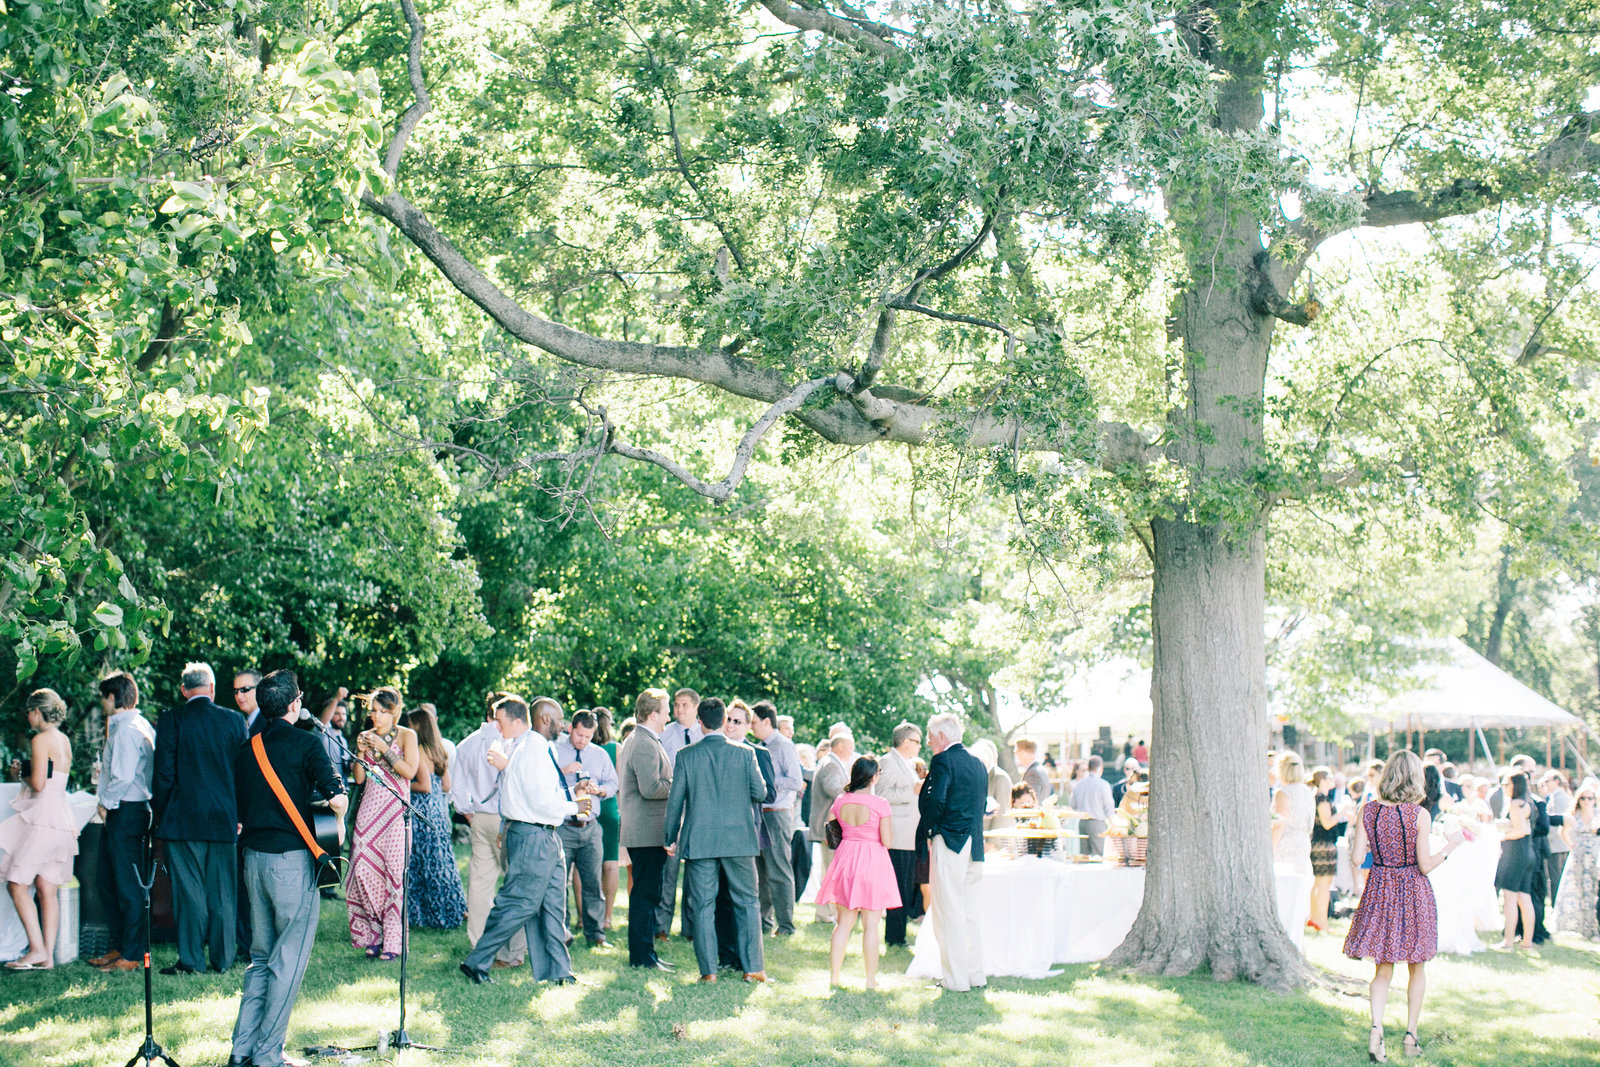 532Kelly_Brett_WeddingIMG_0940